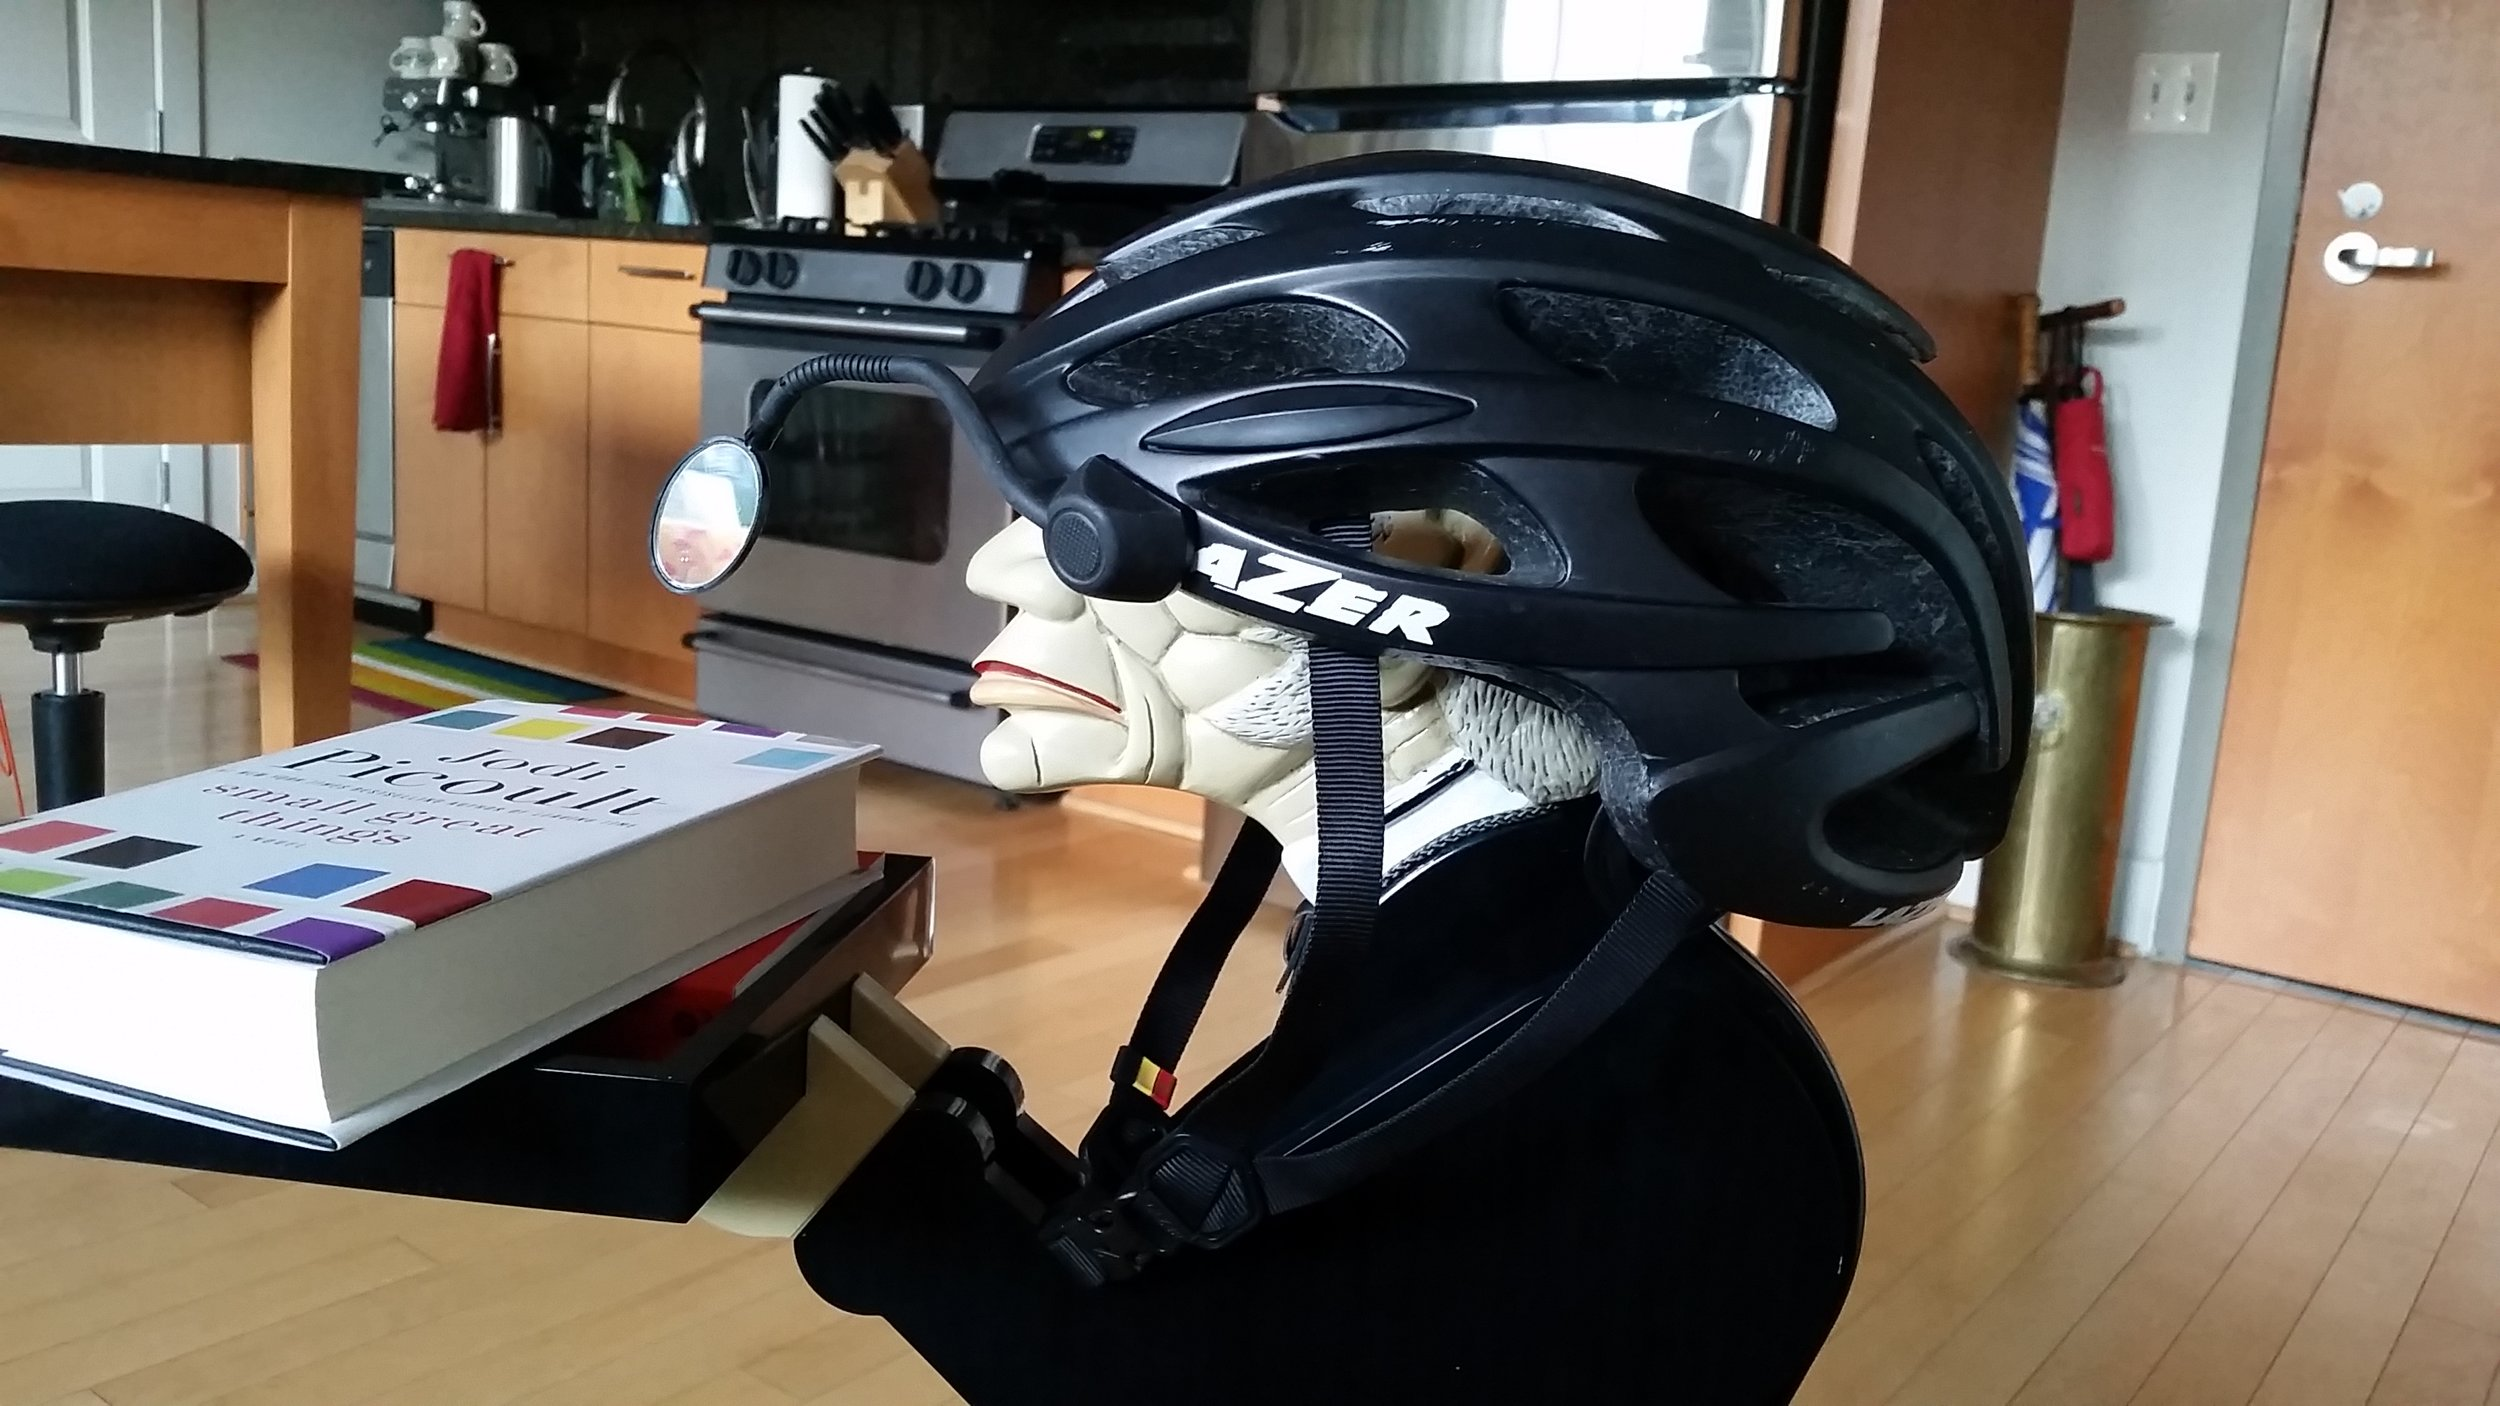 Helment-mounted rear-view lets this guy can see everything in front of and behind him